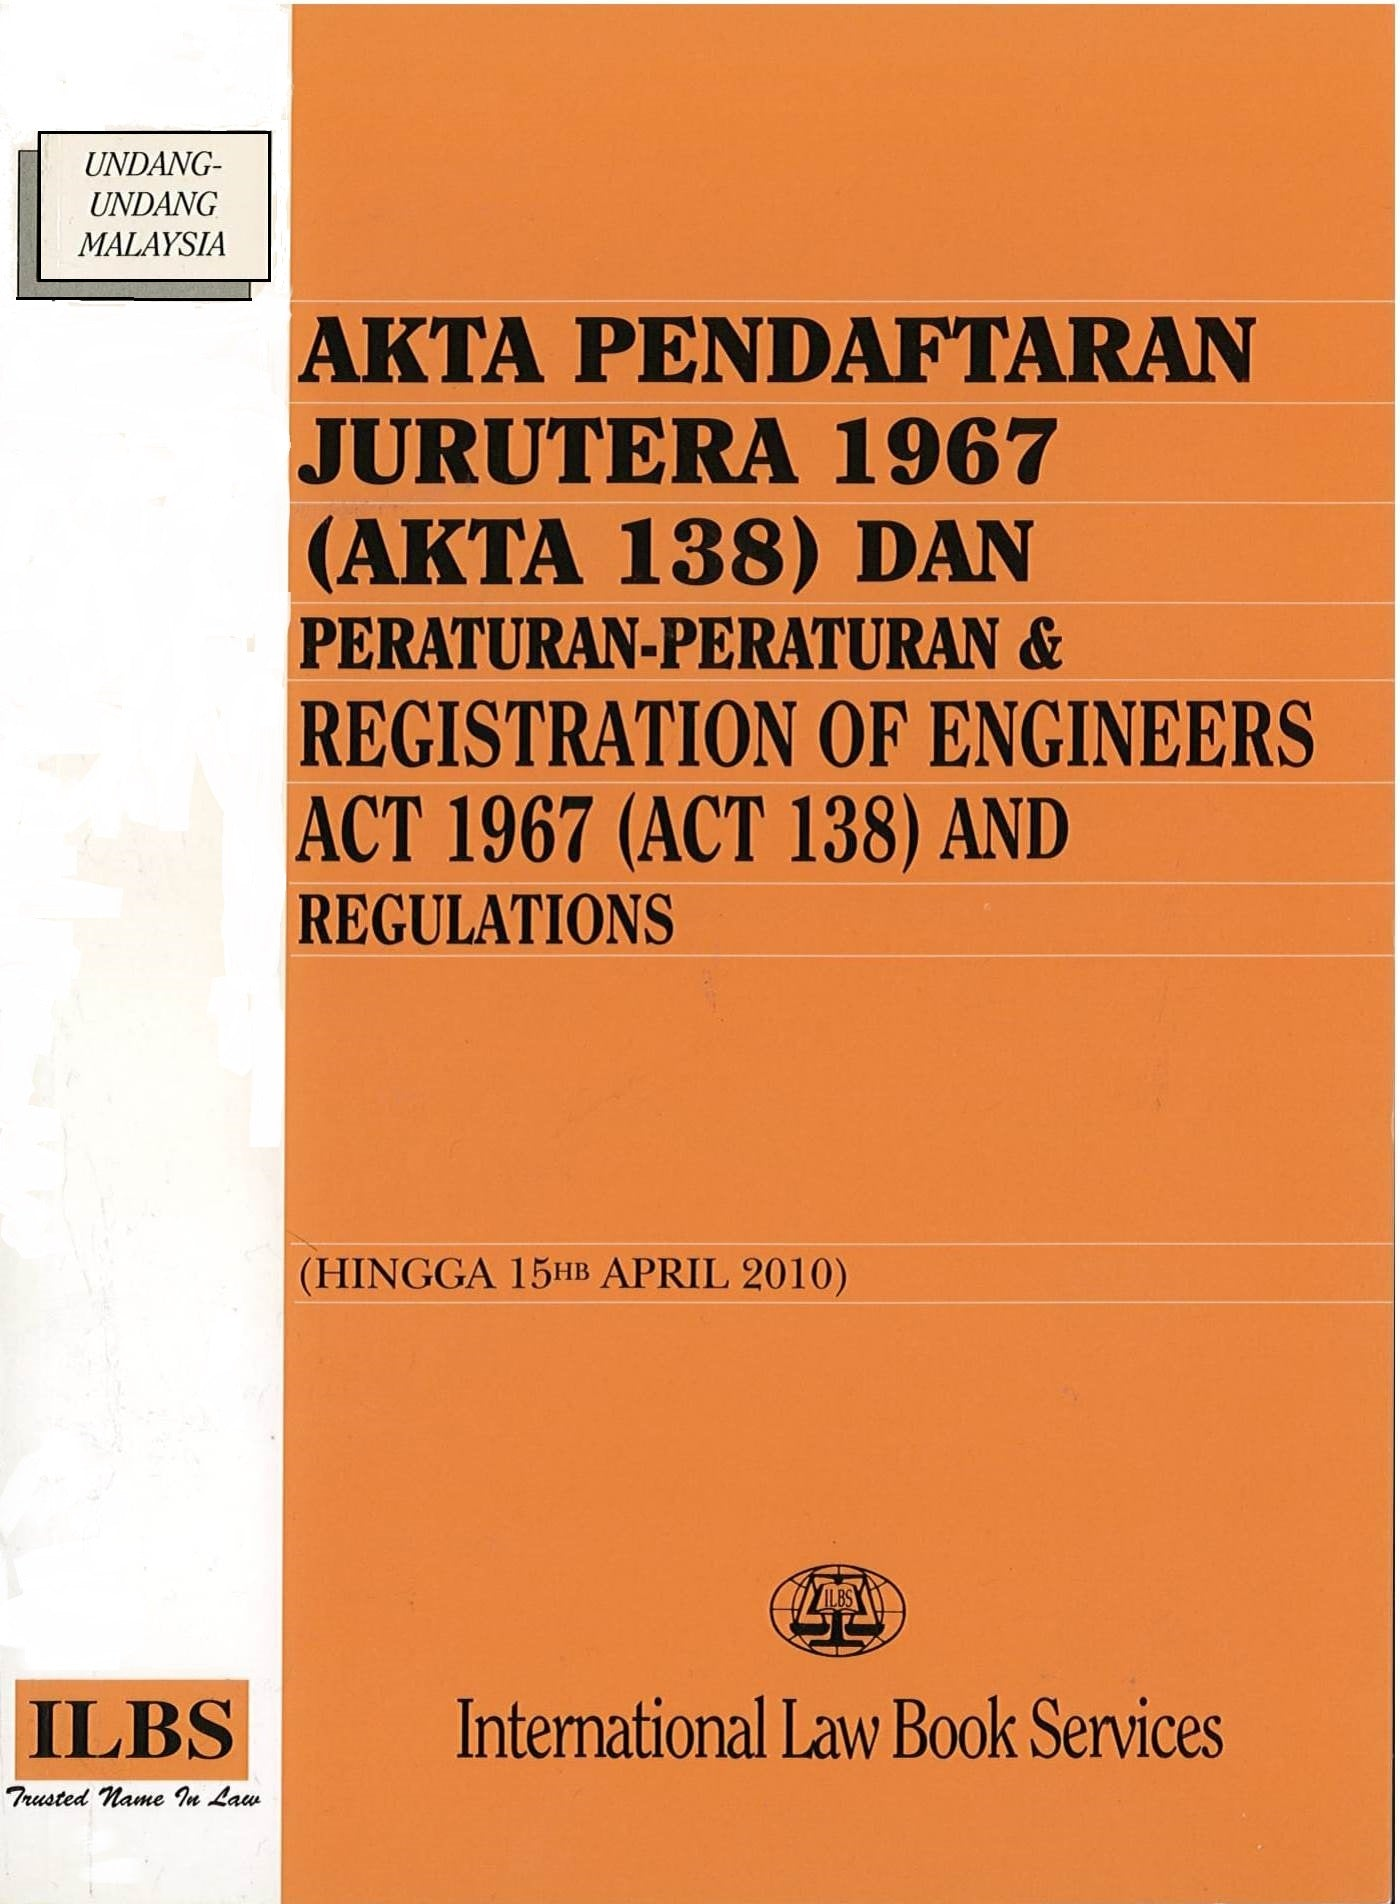 REGISTRATION OF ENGINEERS ACT 1967 (ACT 138) AND REGULATIONS (TOGETHER WITH MALAY VERSION)